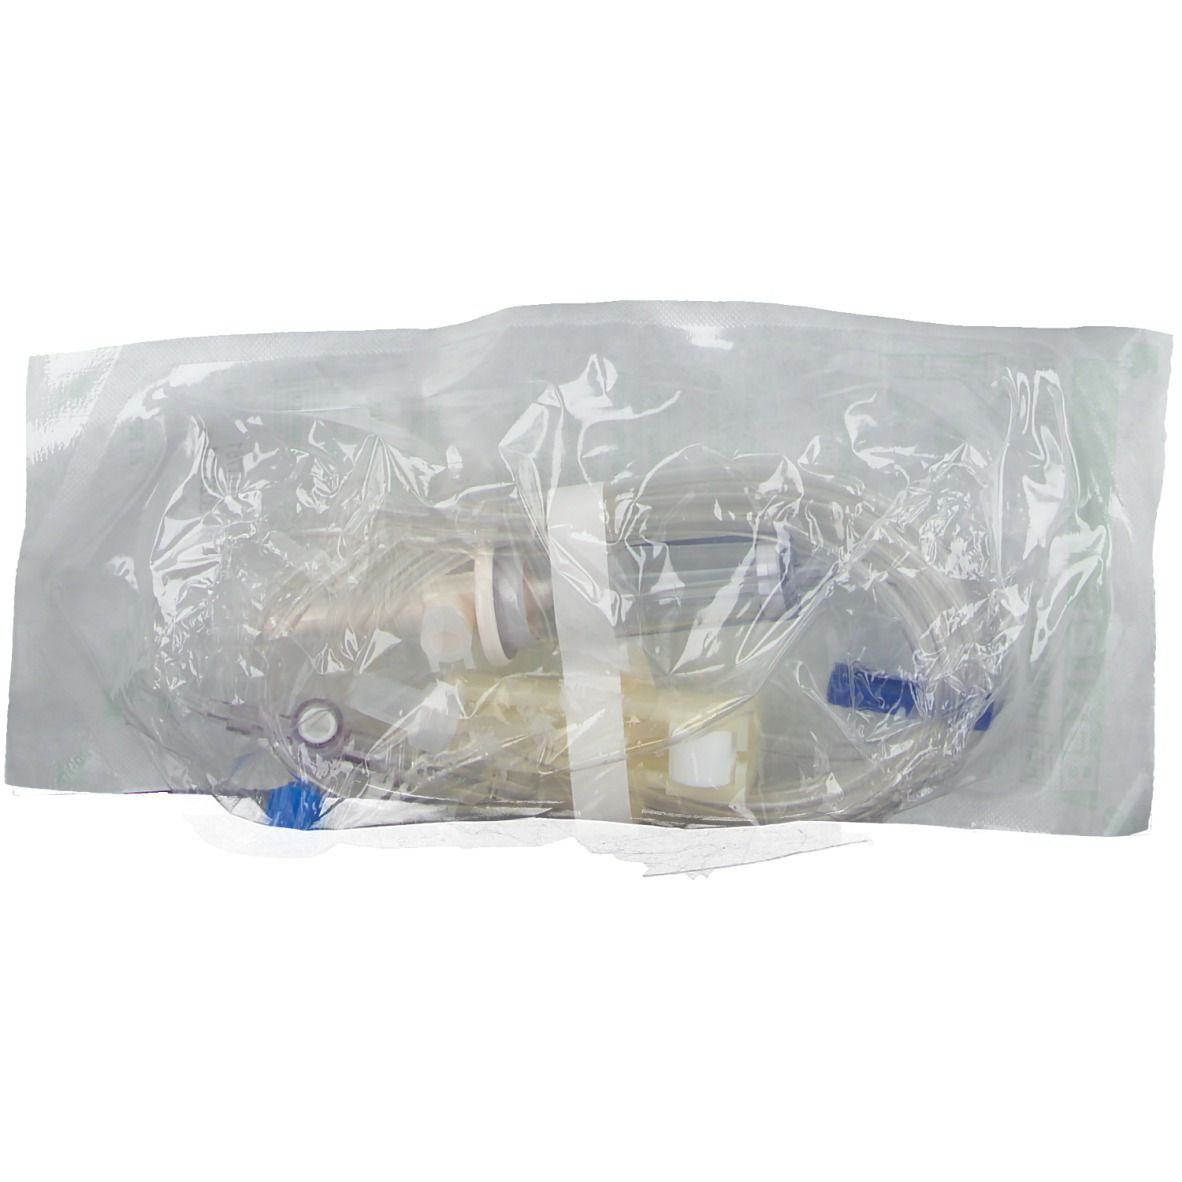 Image of Baxter Vented Chamber 19 cm RMC9676 Infusion Set